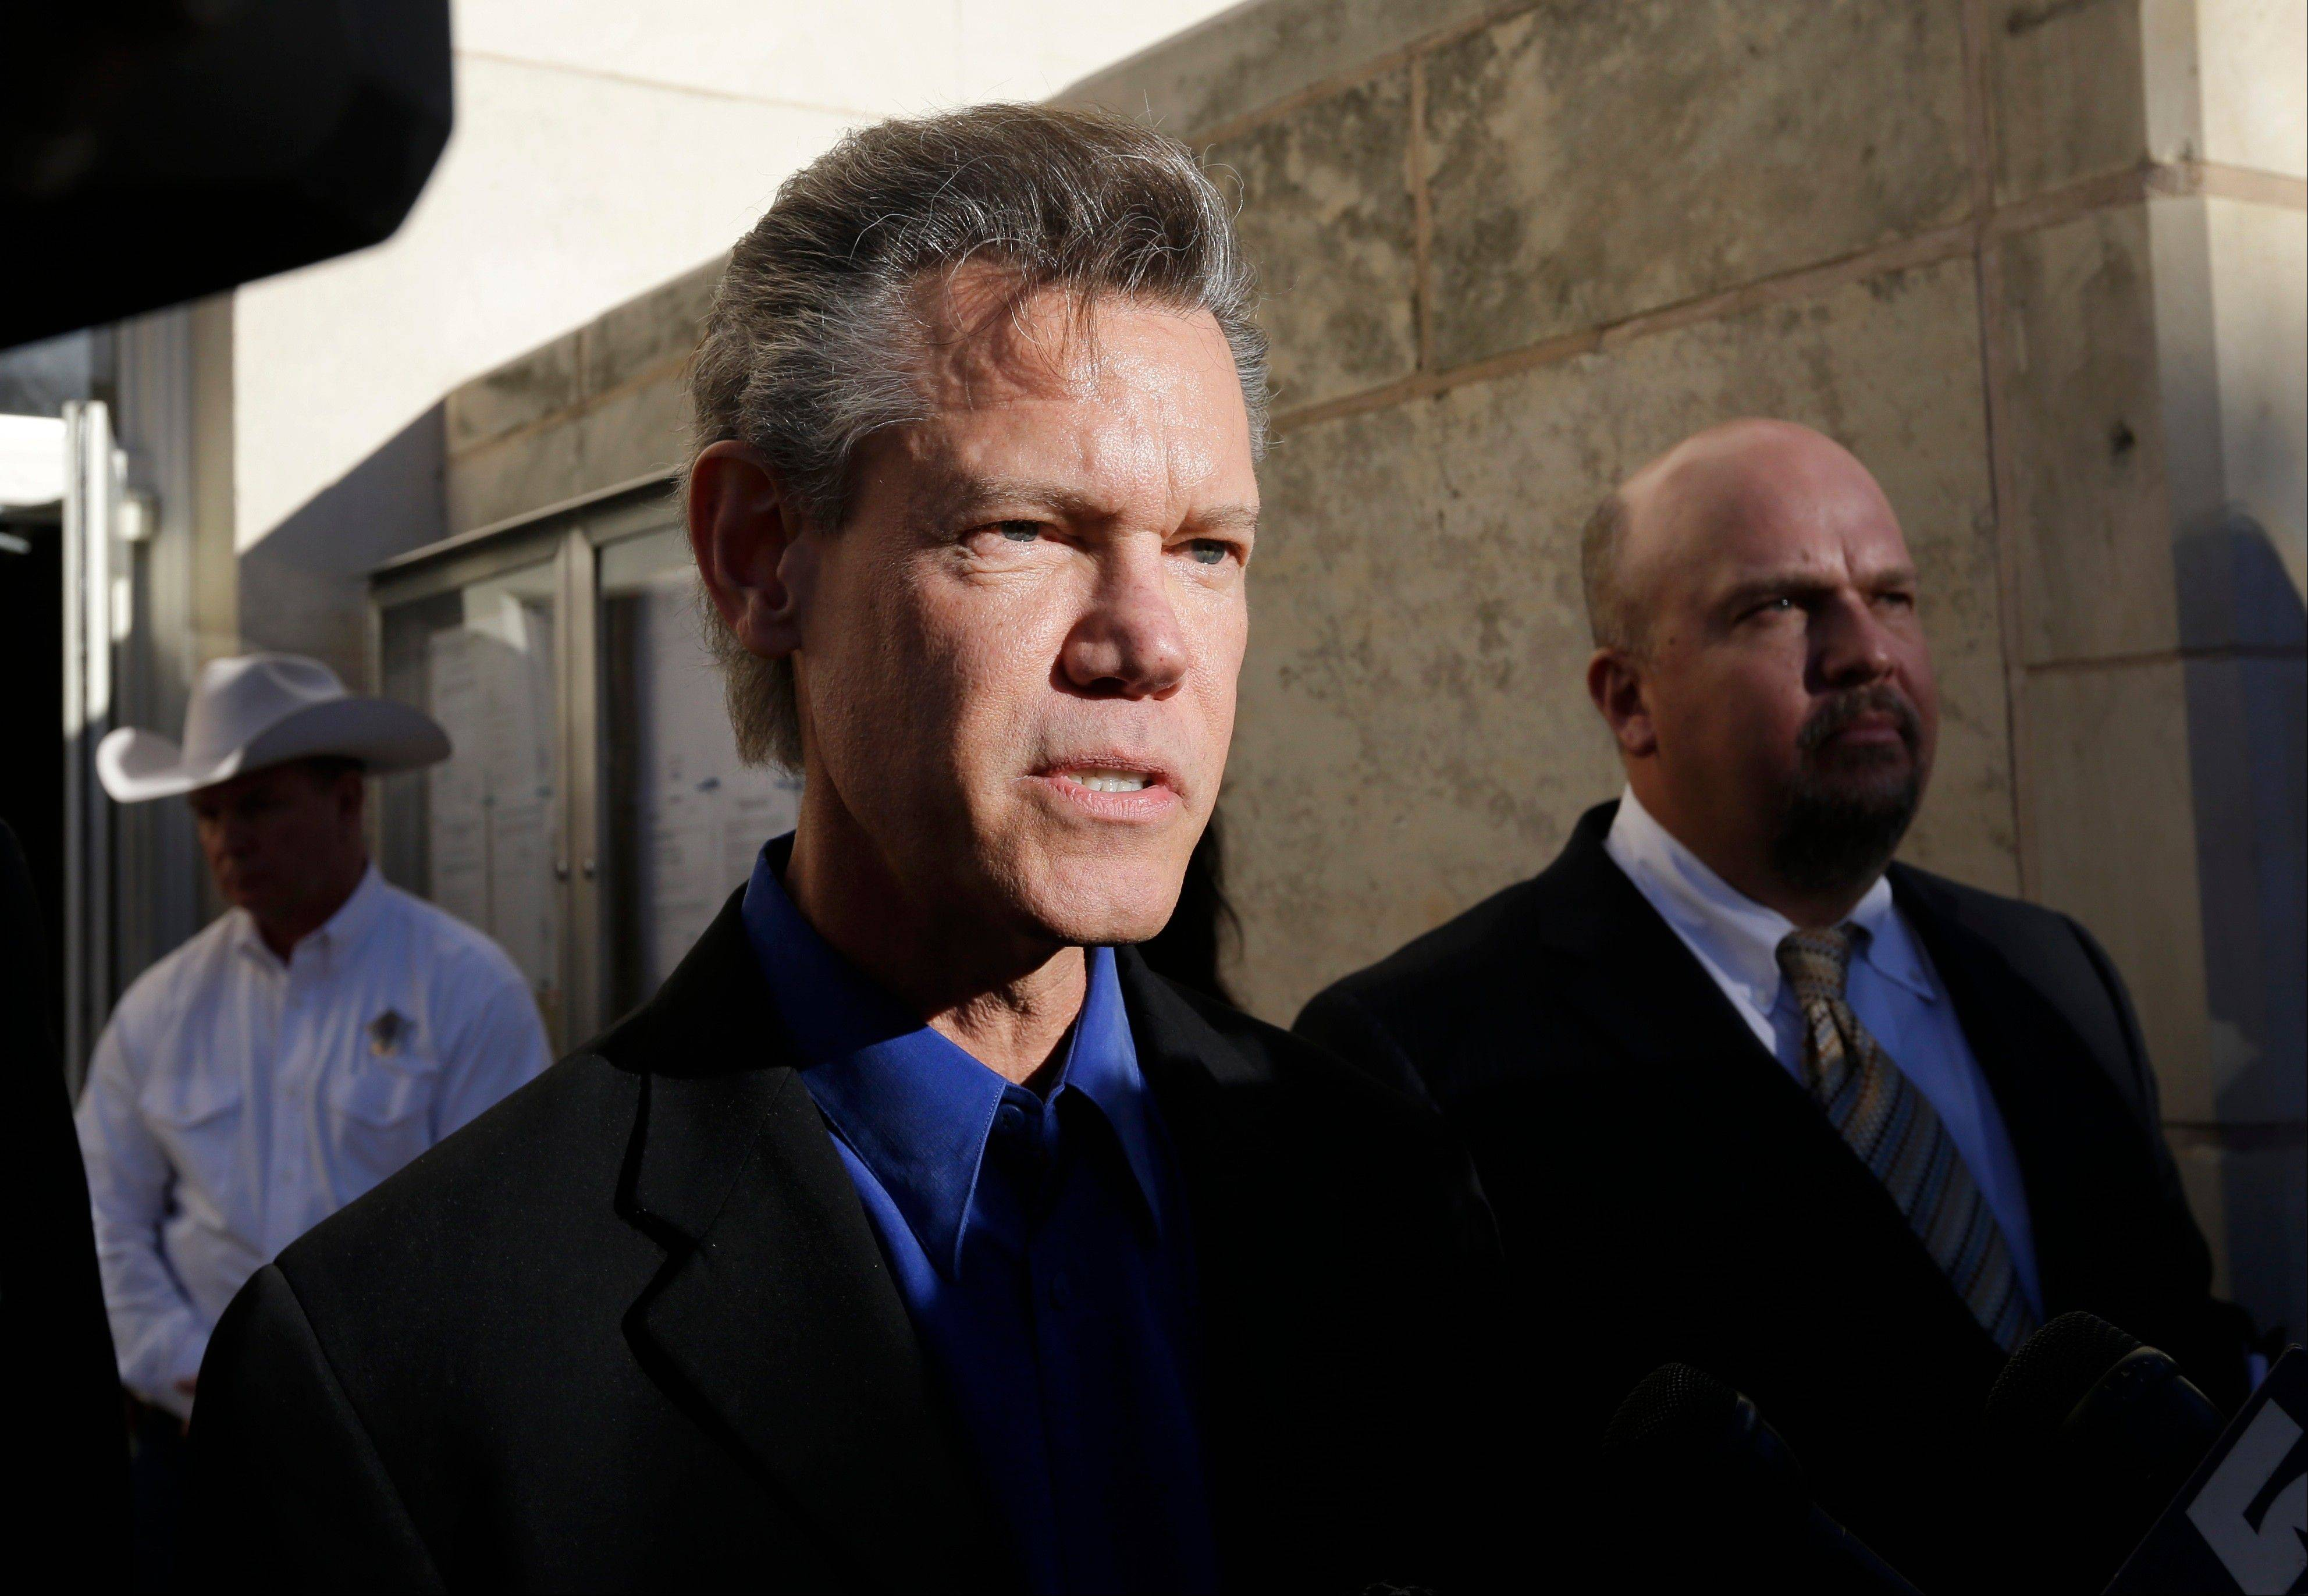 Entertainer Randy Travis, center, makes comments after exiting the Grayson County Courthouse Thursday in Sherman, Texas. Travis plead guilty to driving while intoxicated in a plea agreement with the court and will pay a $2,000 fine and serve a two year probation.